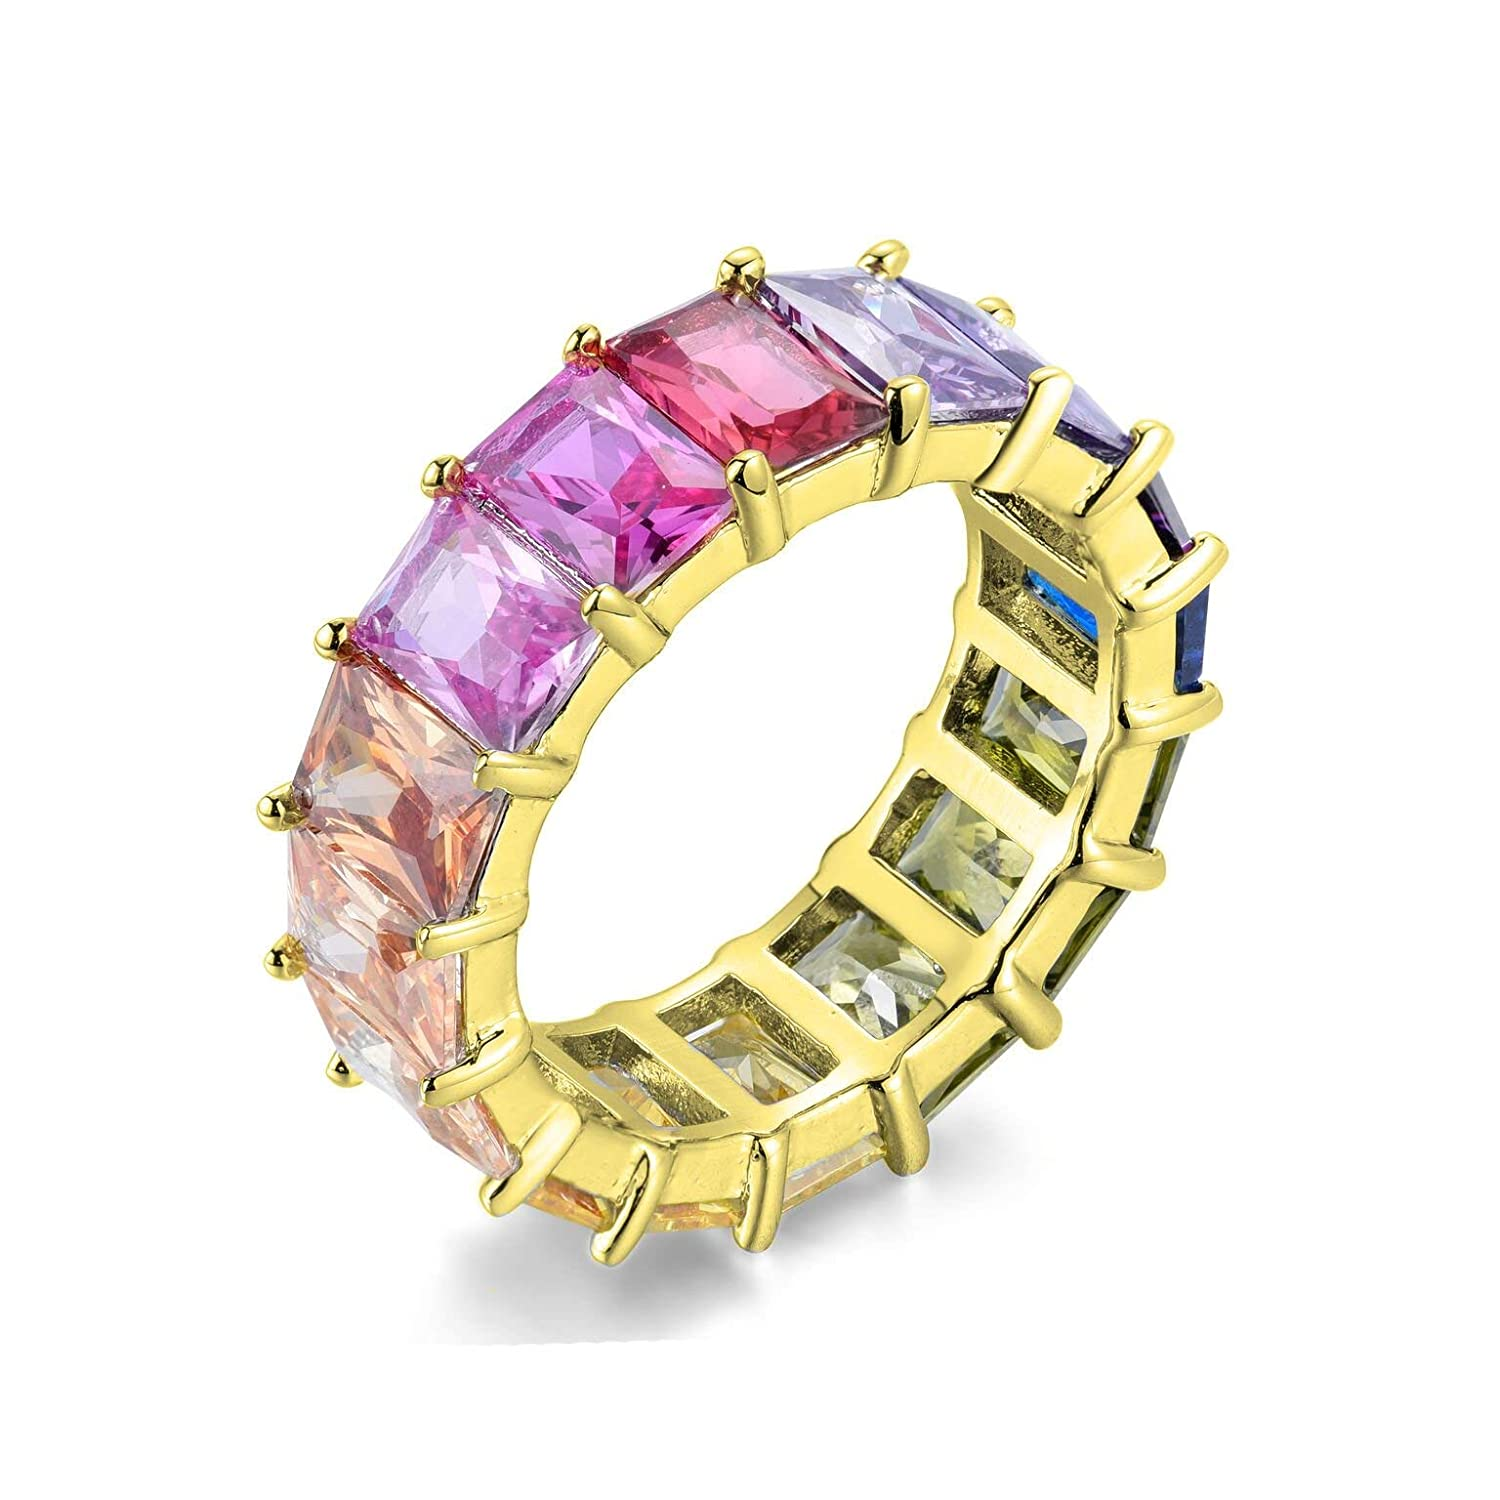 Colorful Eternity Ring,Multi Colored Band Ring,Multi Colored Sterling Silver Ring,Gift for her,Gift for mom SEVEN50 Colorful Sterling Silver Emerald Eternity Band